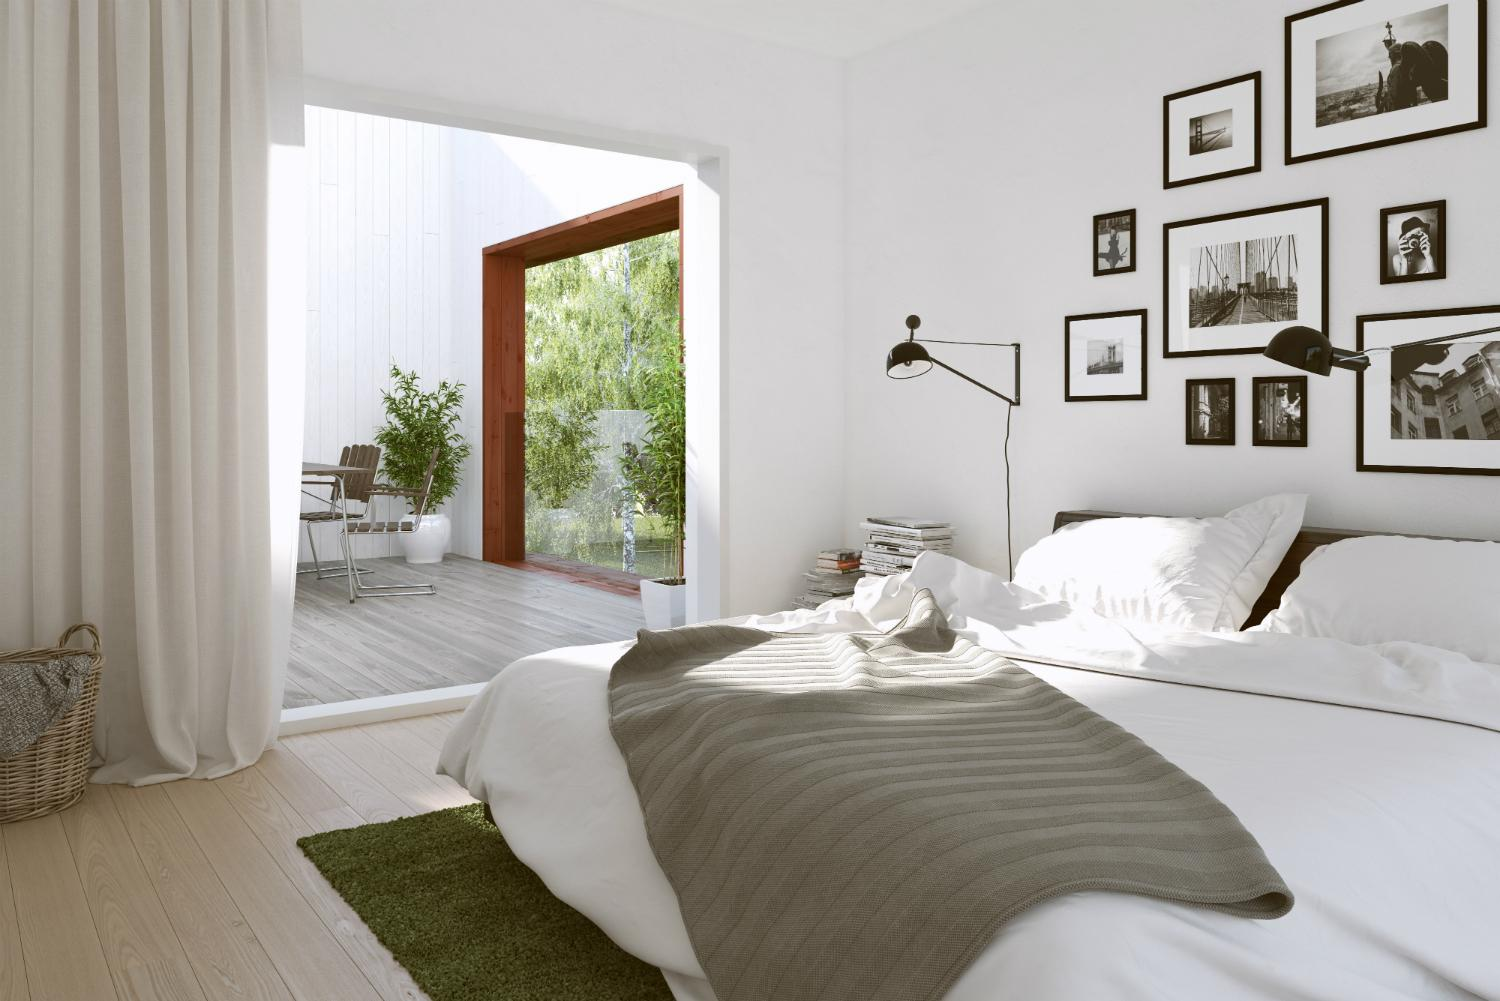 Survey shows many people opting for tech-free, 'sanctuary-like' bedrooms